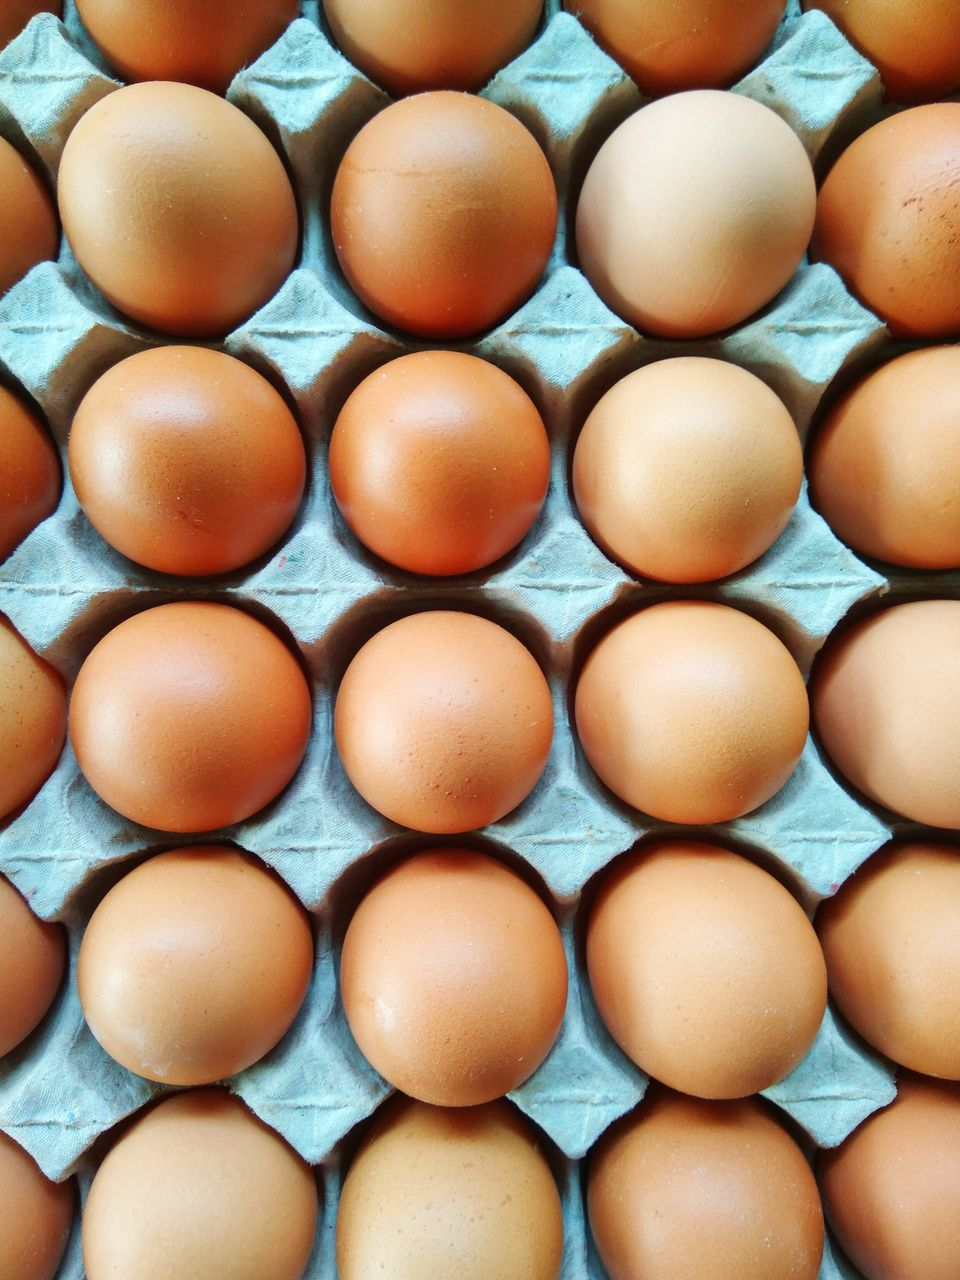 egg, in a row, egg carton, food and drink, food, full frame, abundance, backgrounds, large group of objects, freshness, indoors, healthy eating, arrangement, no people, close-up, day